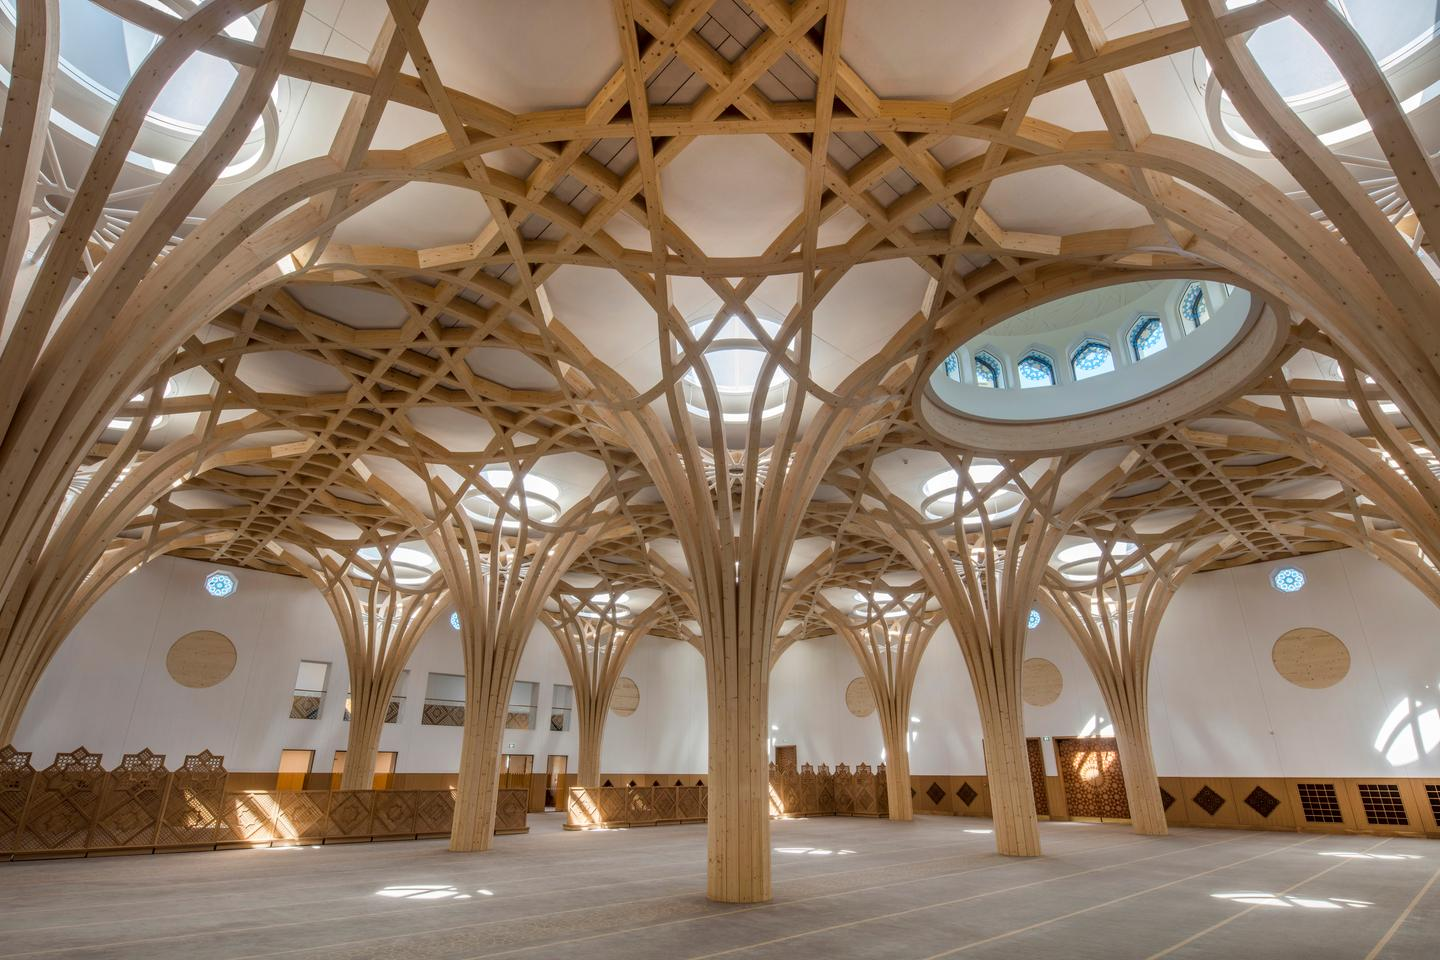 Cambridge Central Mosque was designed by Marks Barfield Architects and hosts 1,000 worshipers in a beautiful new mosque that takes its place well within a low rise, residential neighborhood